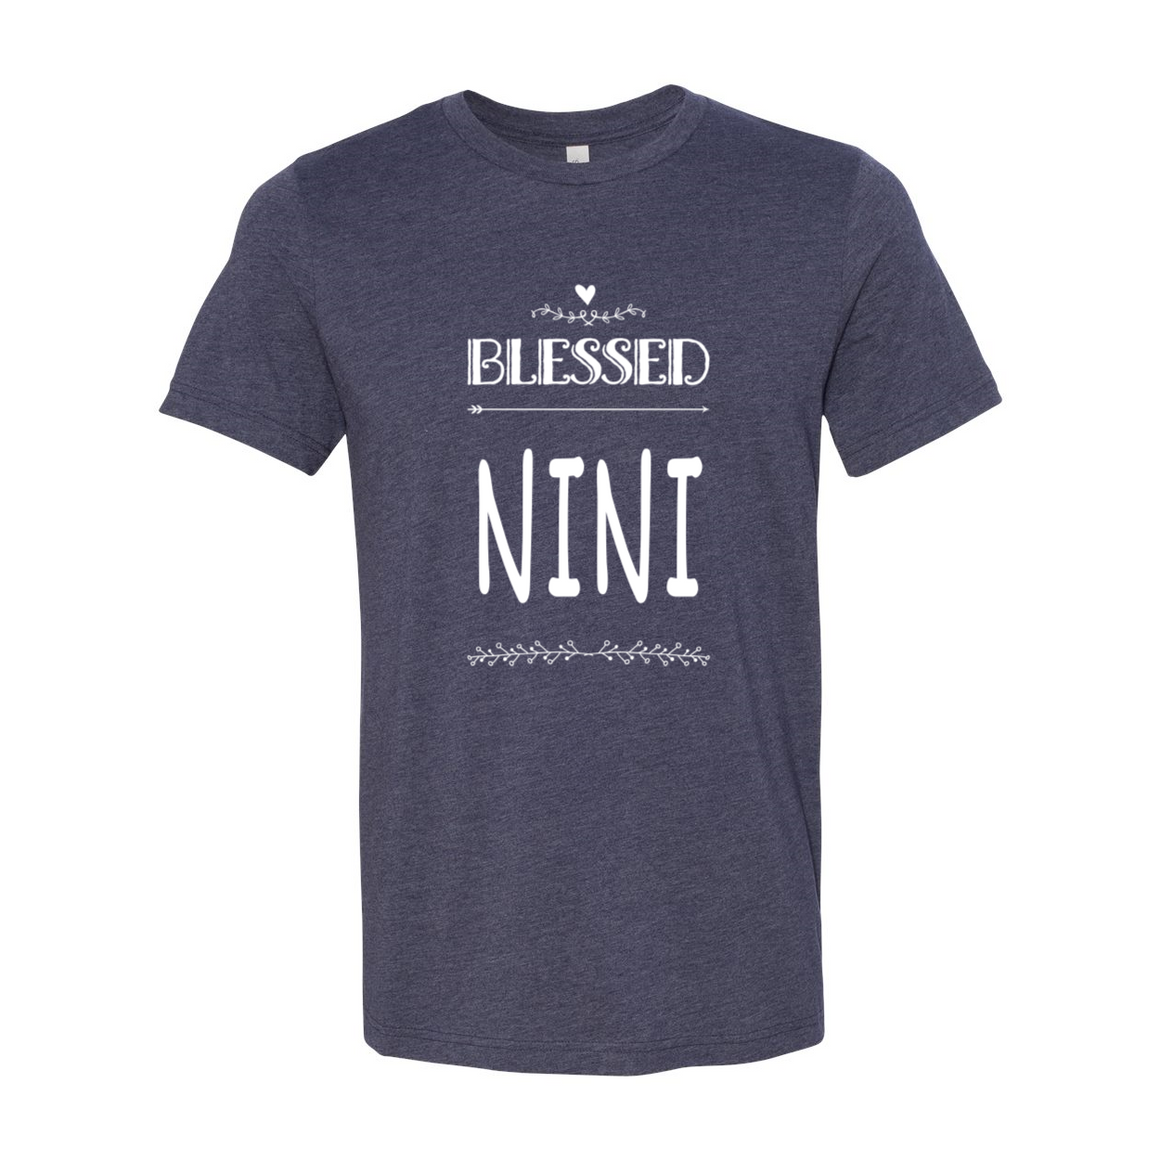 Blessed Nini Grandma Grandmother Tshirt